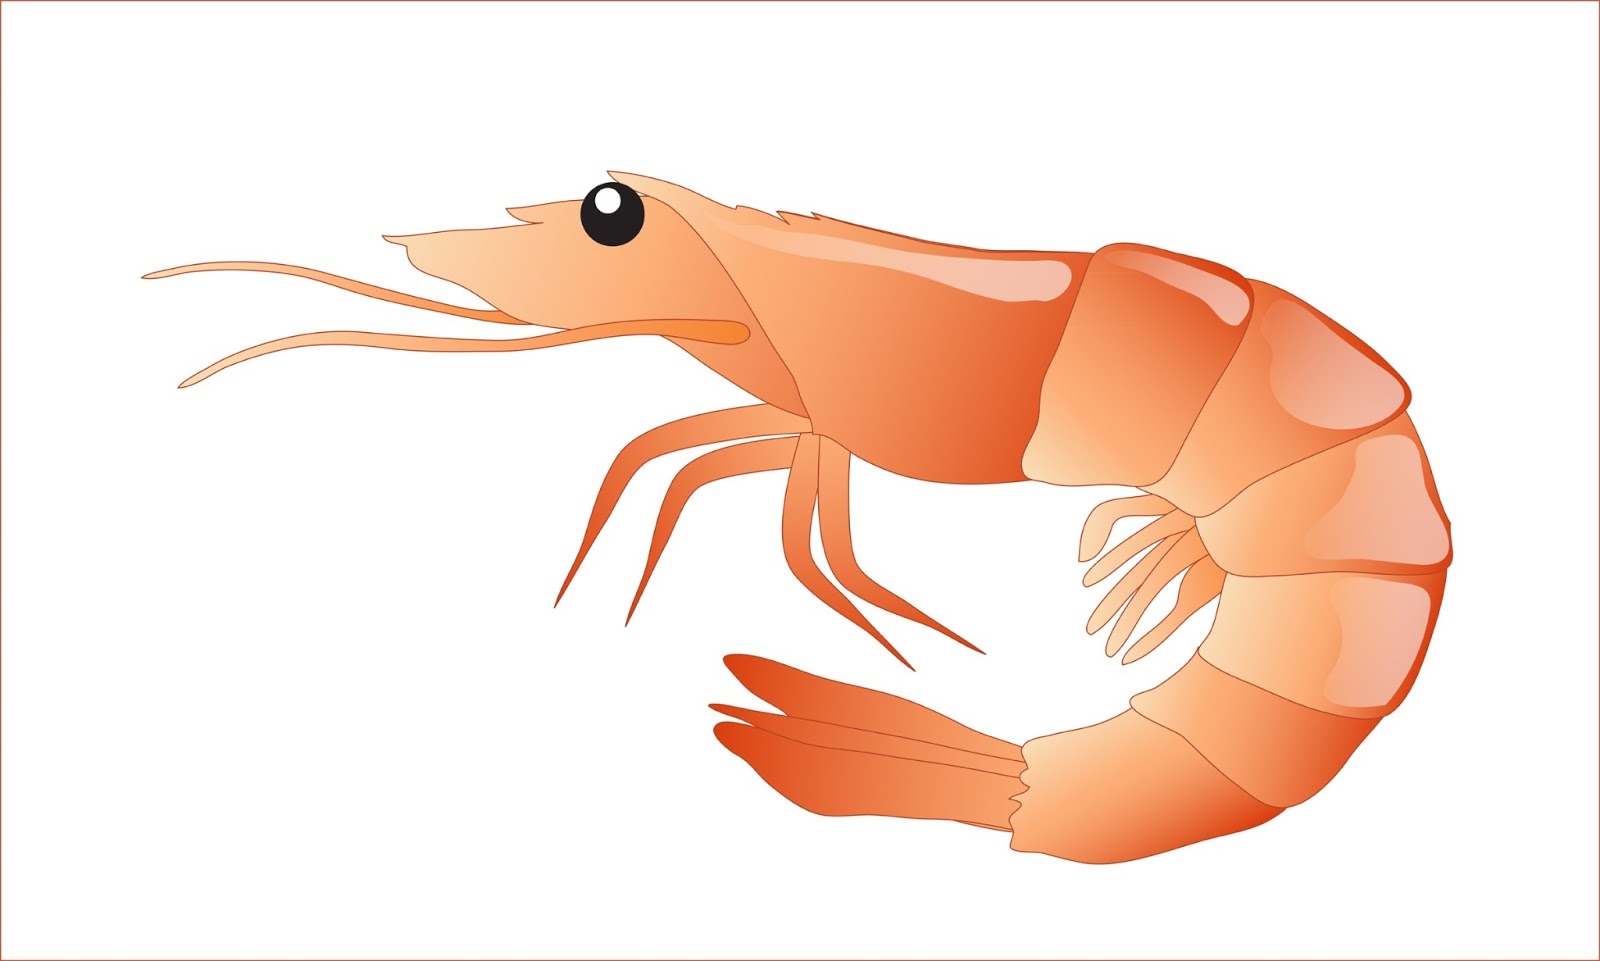 Clipart shrimp clipart transparent Free Shrimp Clipart, Download Free Clip Art, Free Clip Art on ... clipart transparent